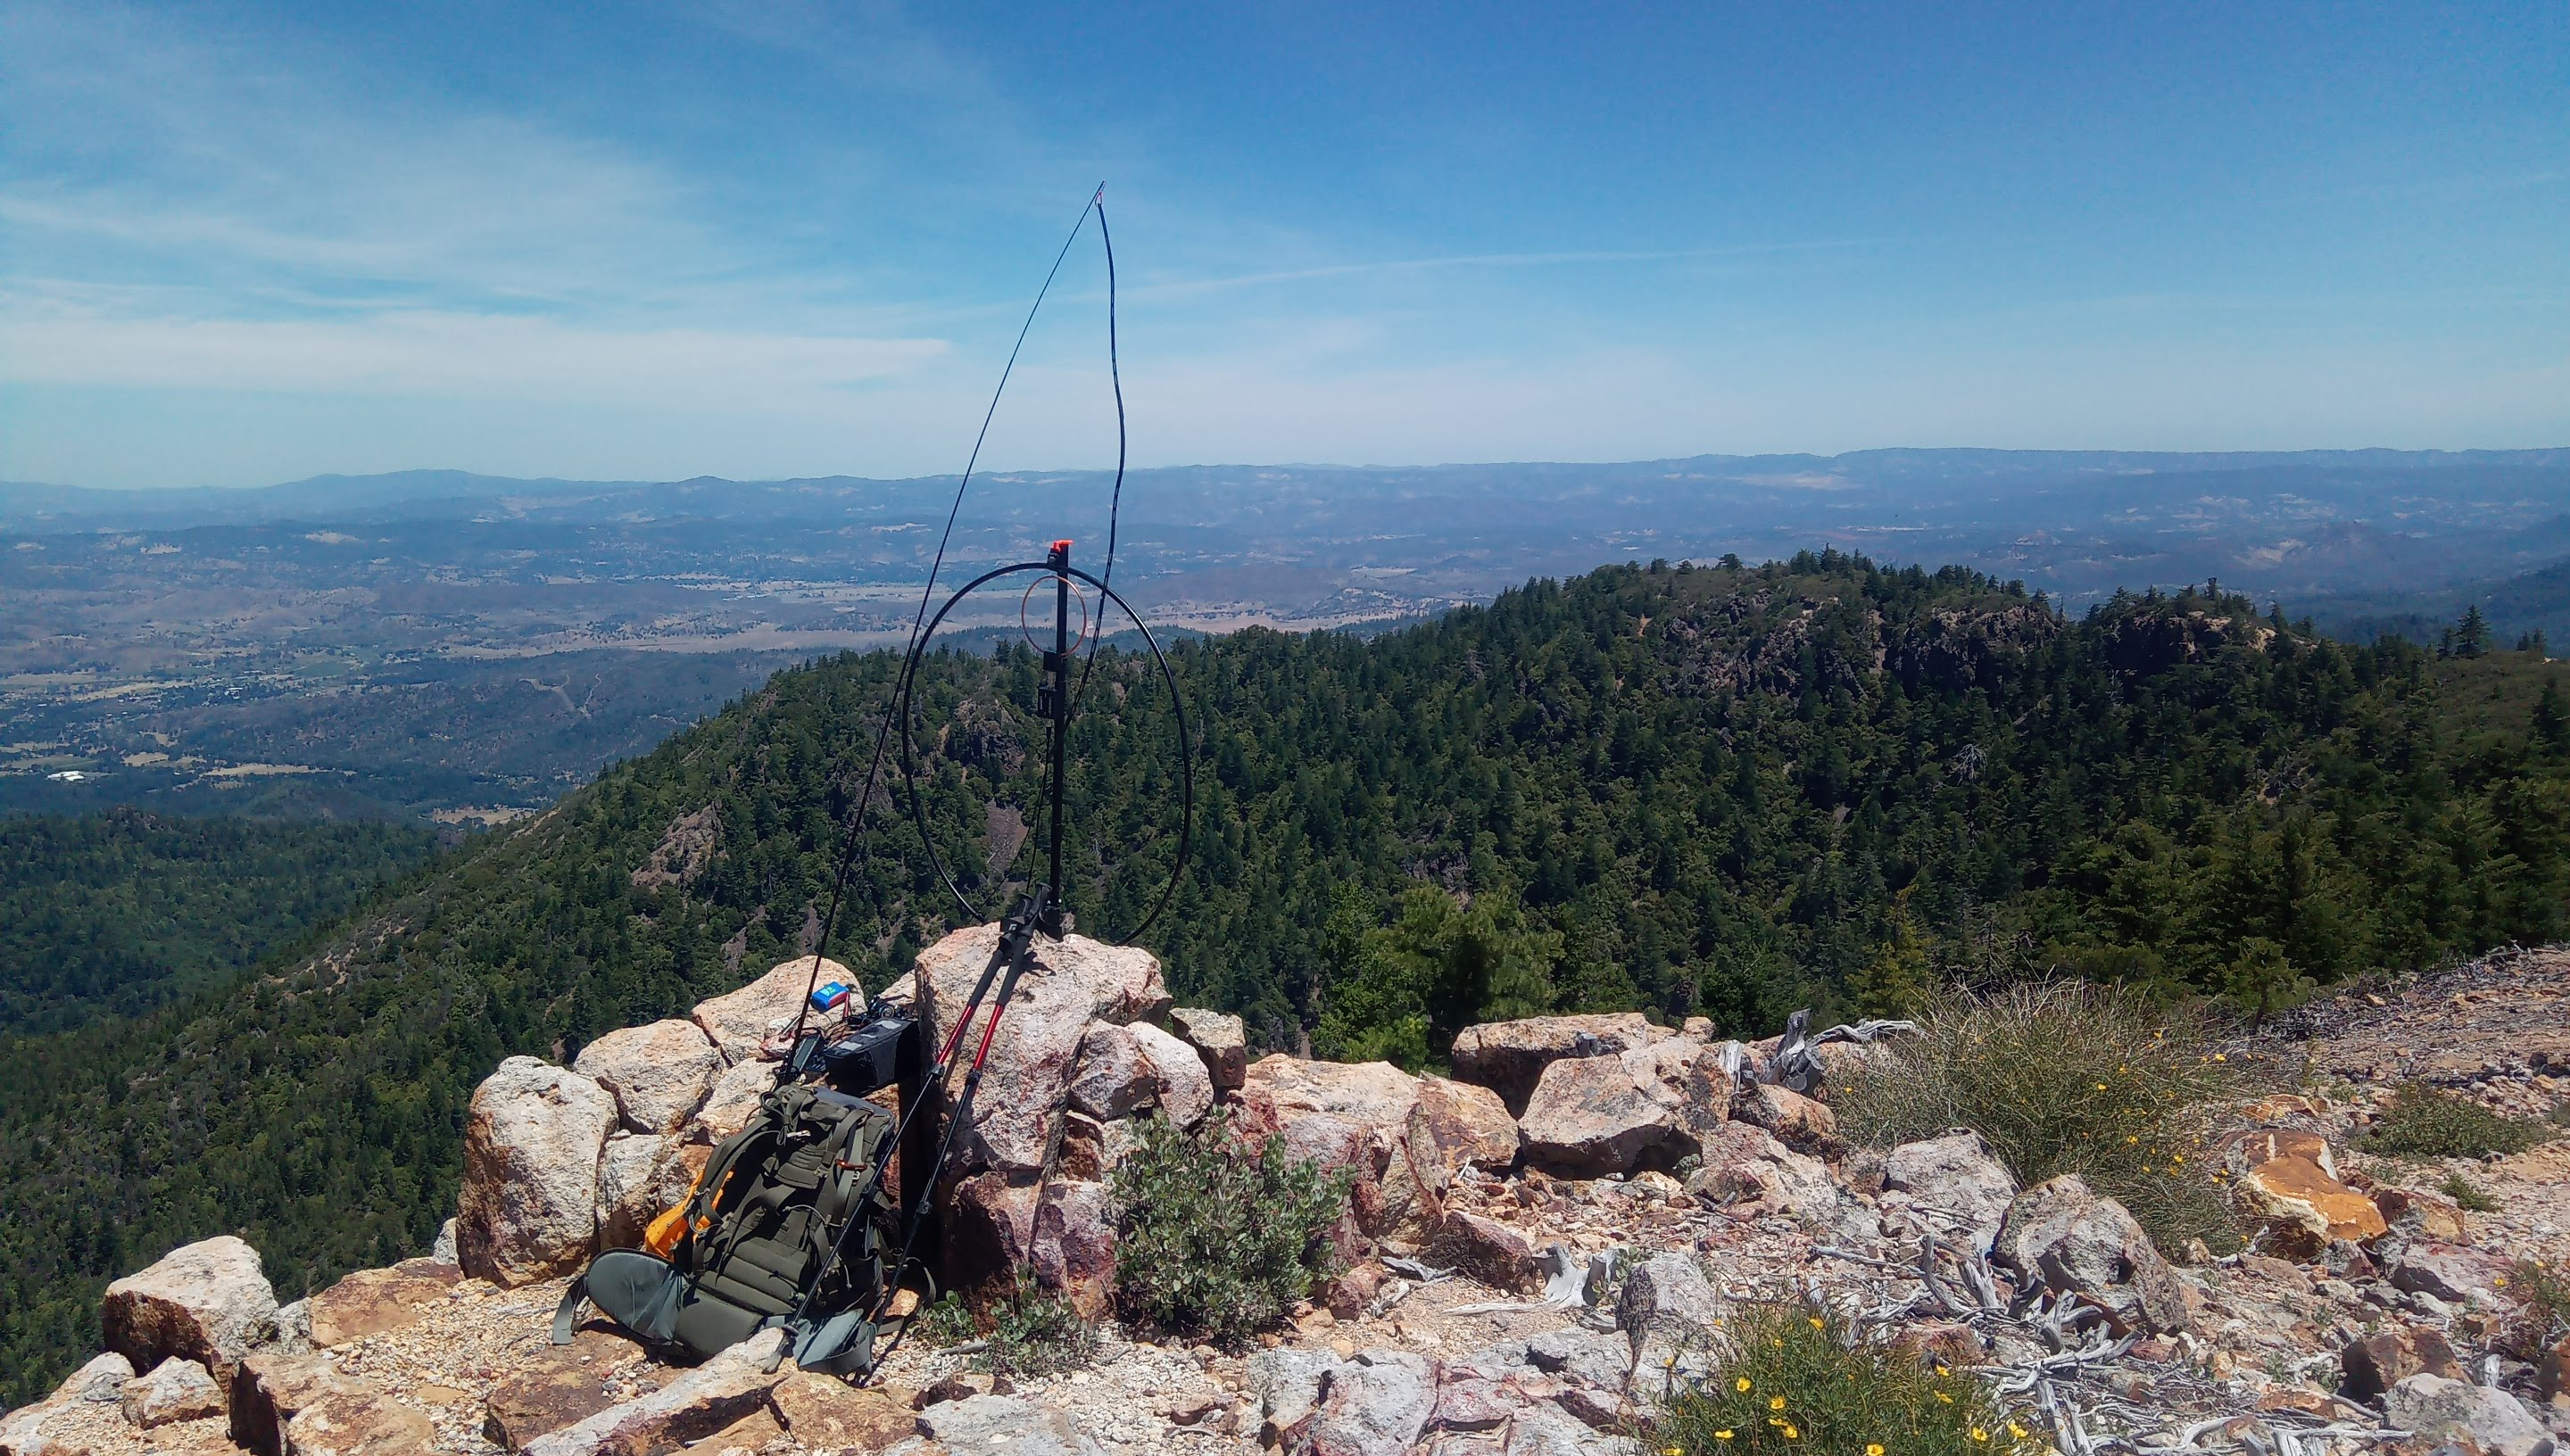 First SOTA activation: Mt. Saint Helena 2020-06-20